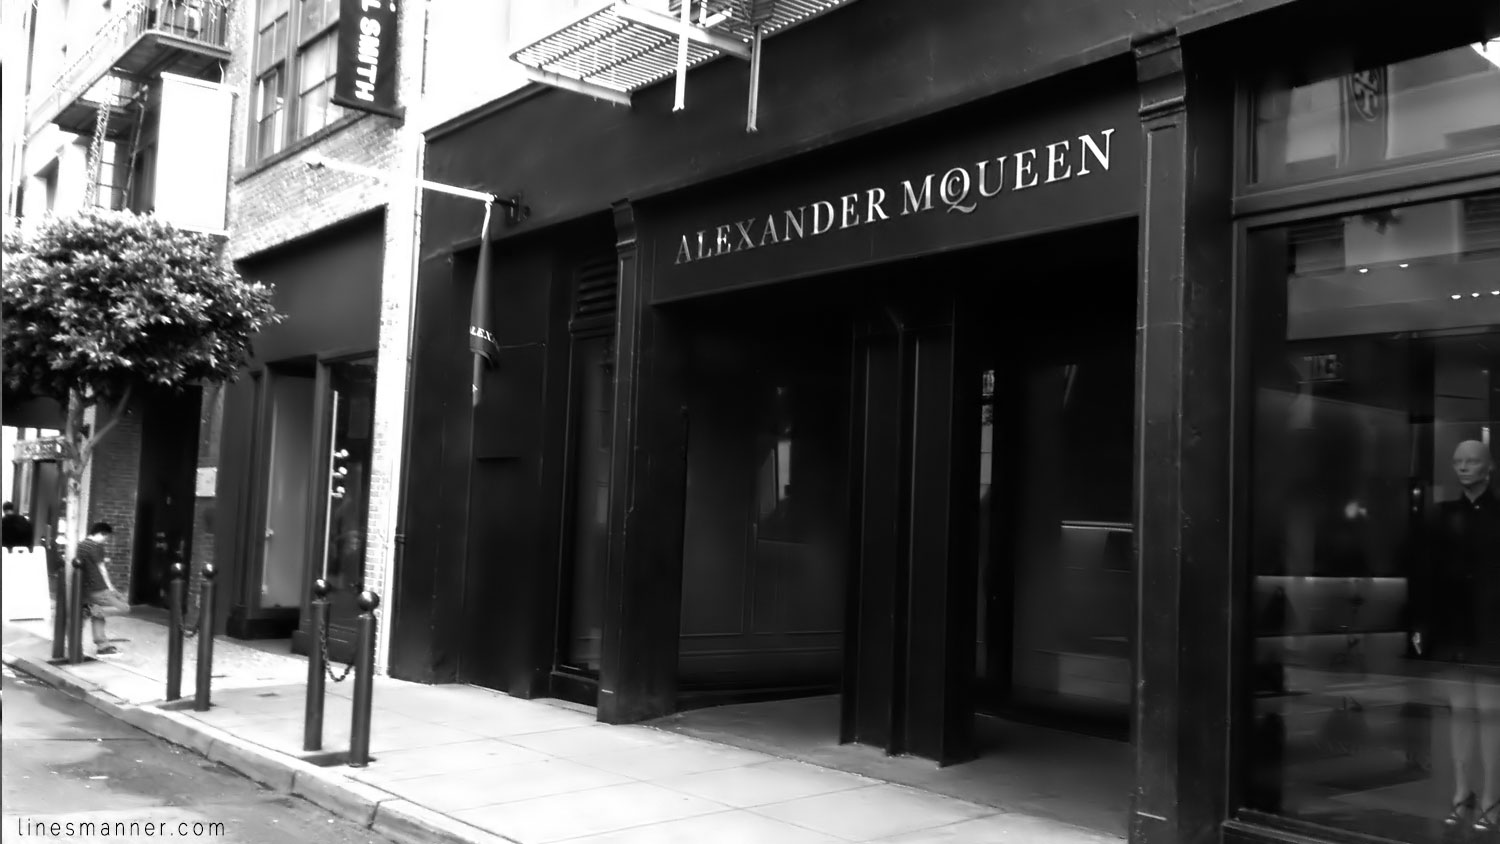 Lines-Manner-Store-Monochrome-Street-San_Francisco-SF-California-World_Places-Photographies-Architecture-Town-City-Alexander_McQueen-Trip-Travelling-Travel-Inpiration-Composition-Gallery-9